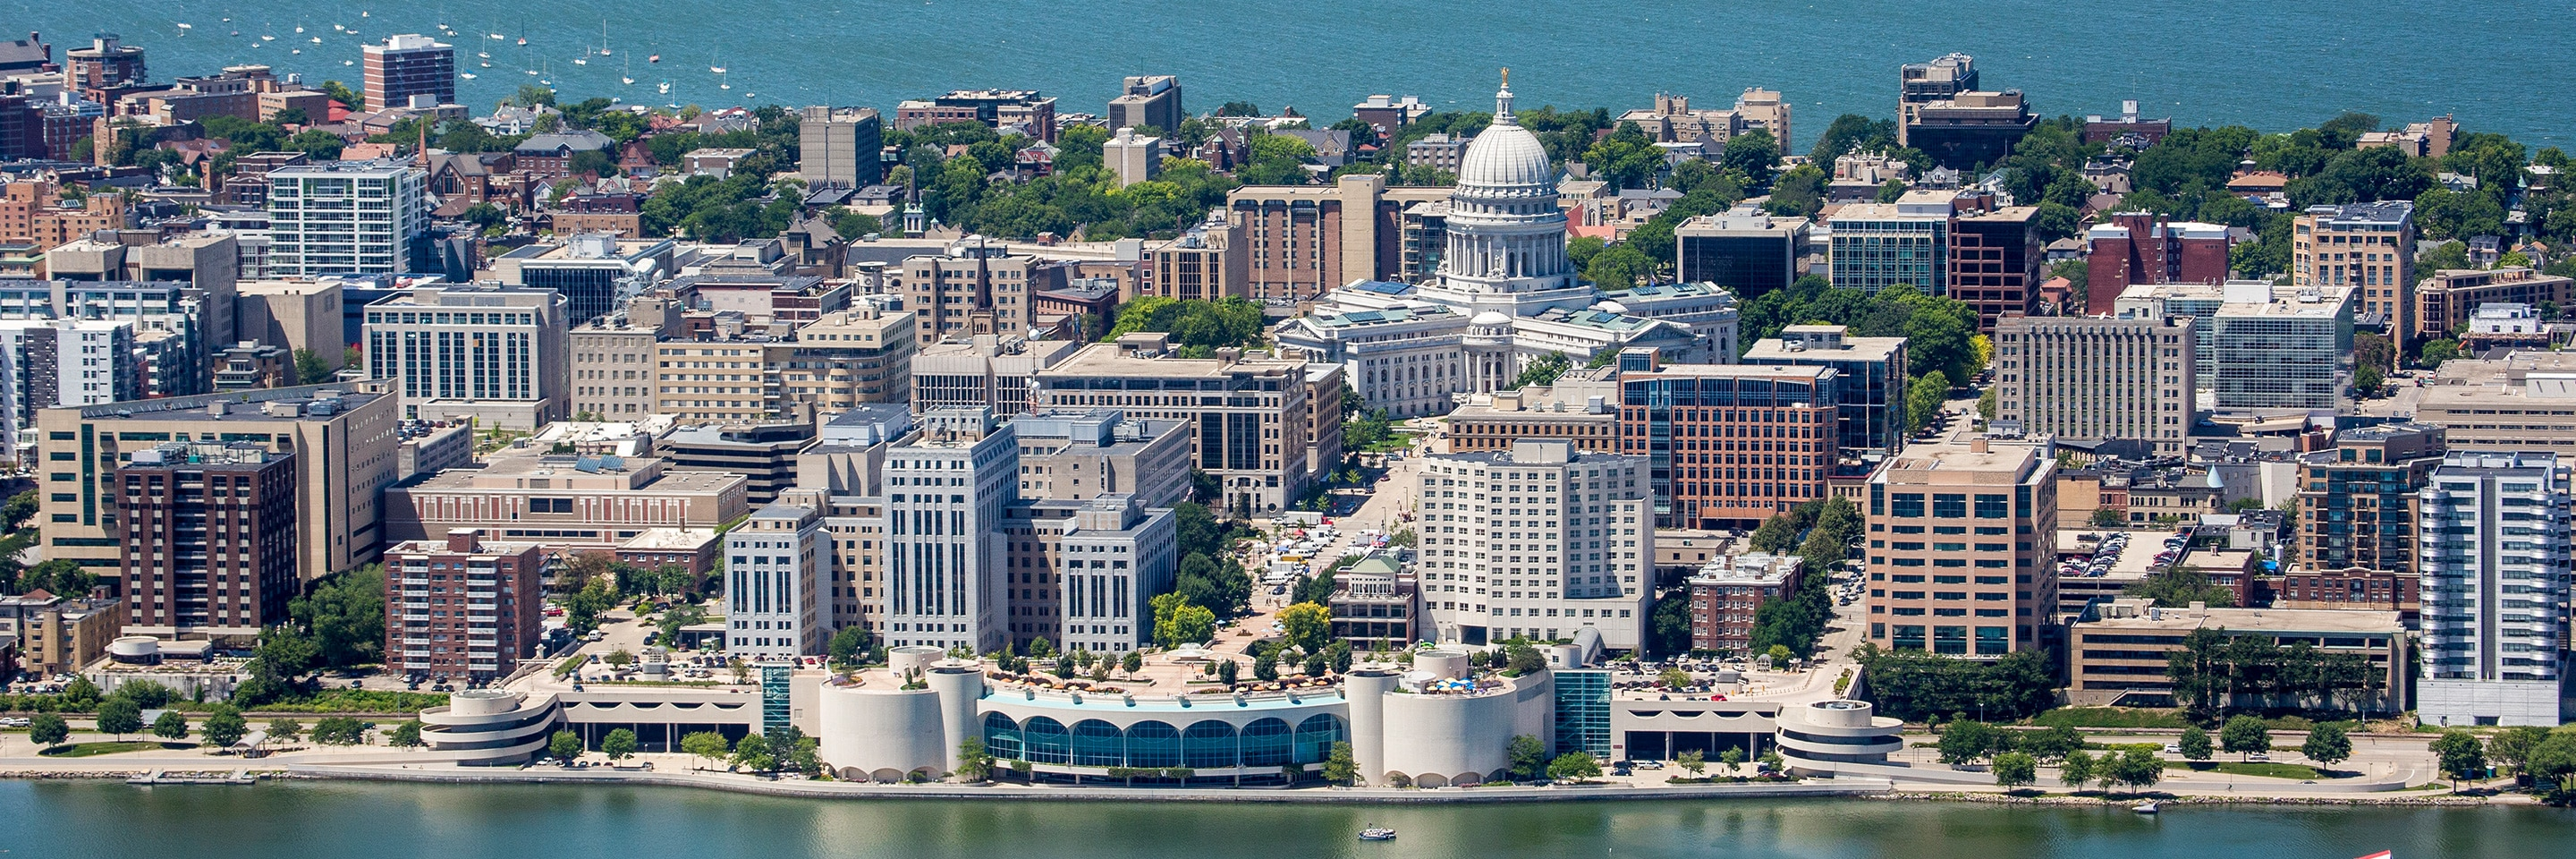 Hotels in Madison